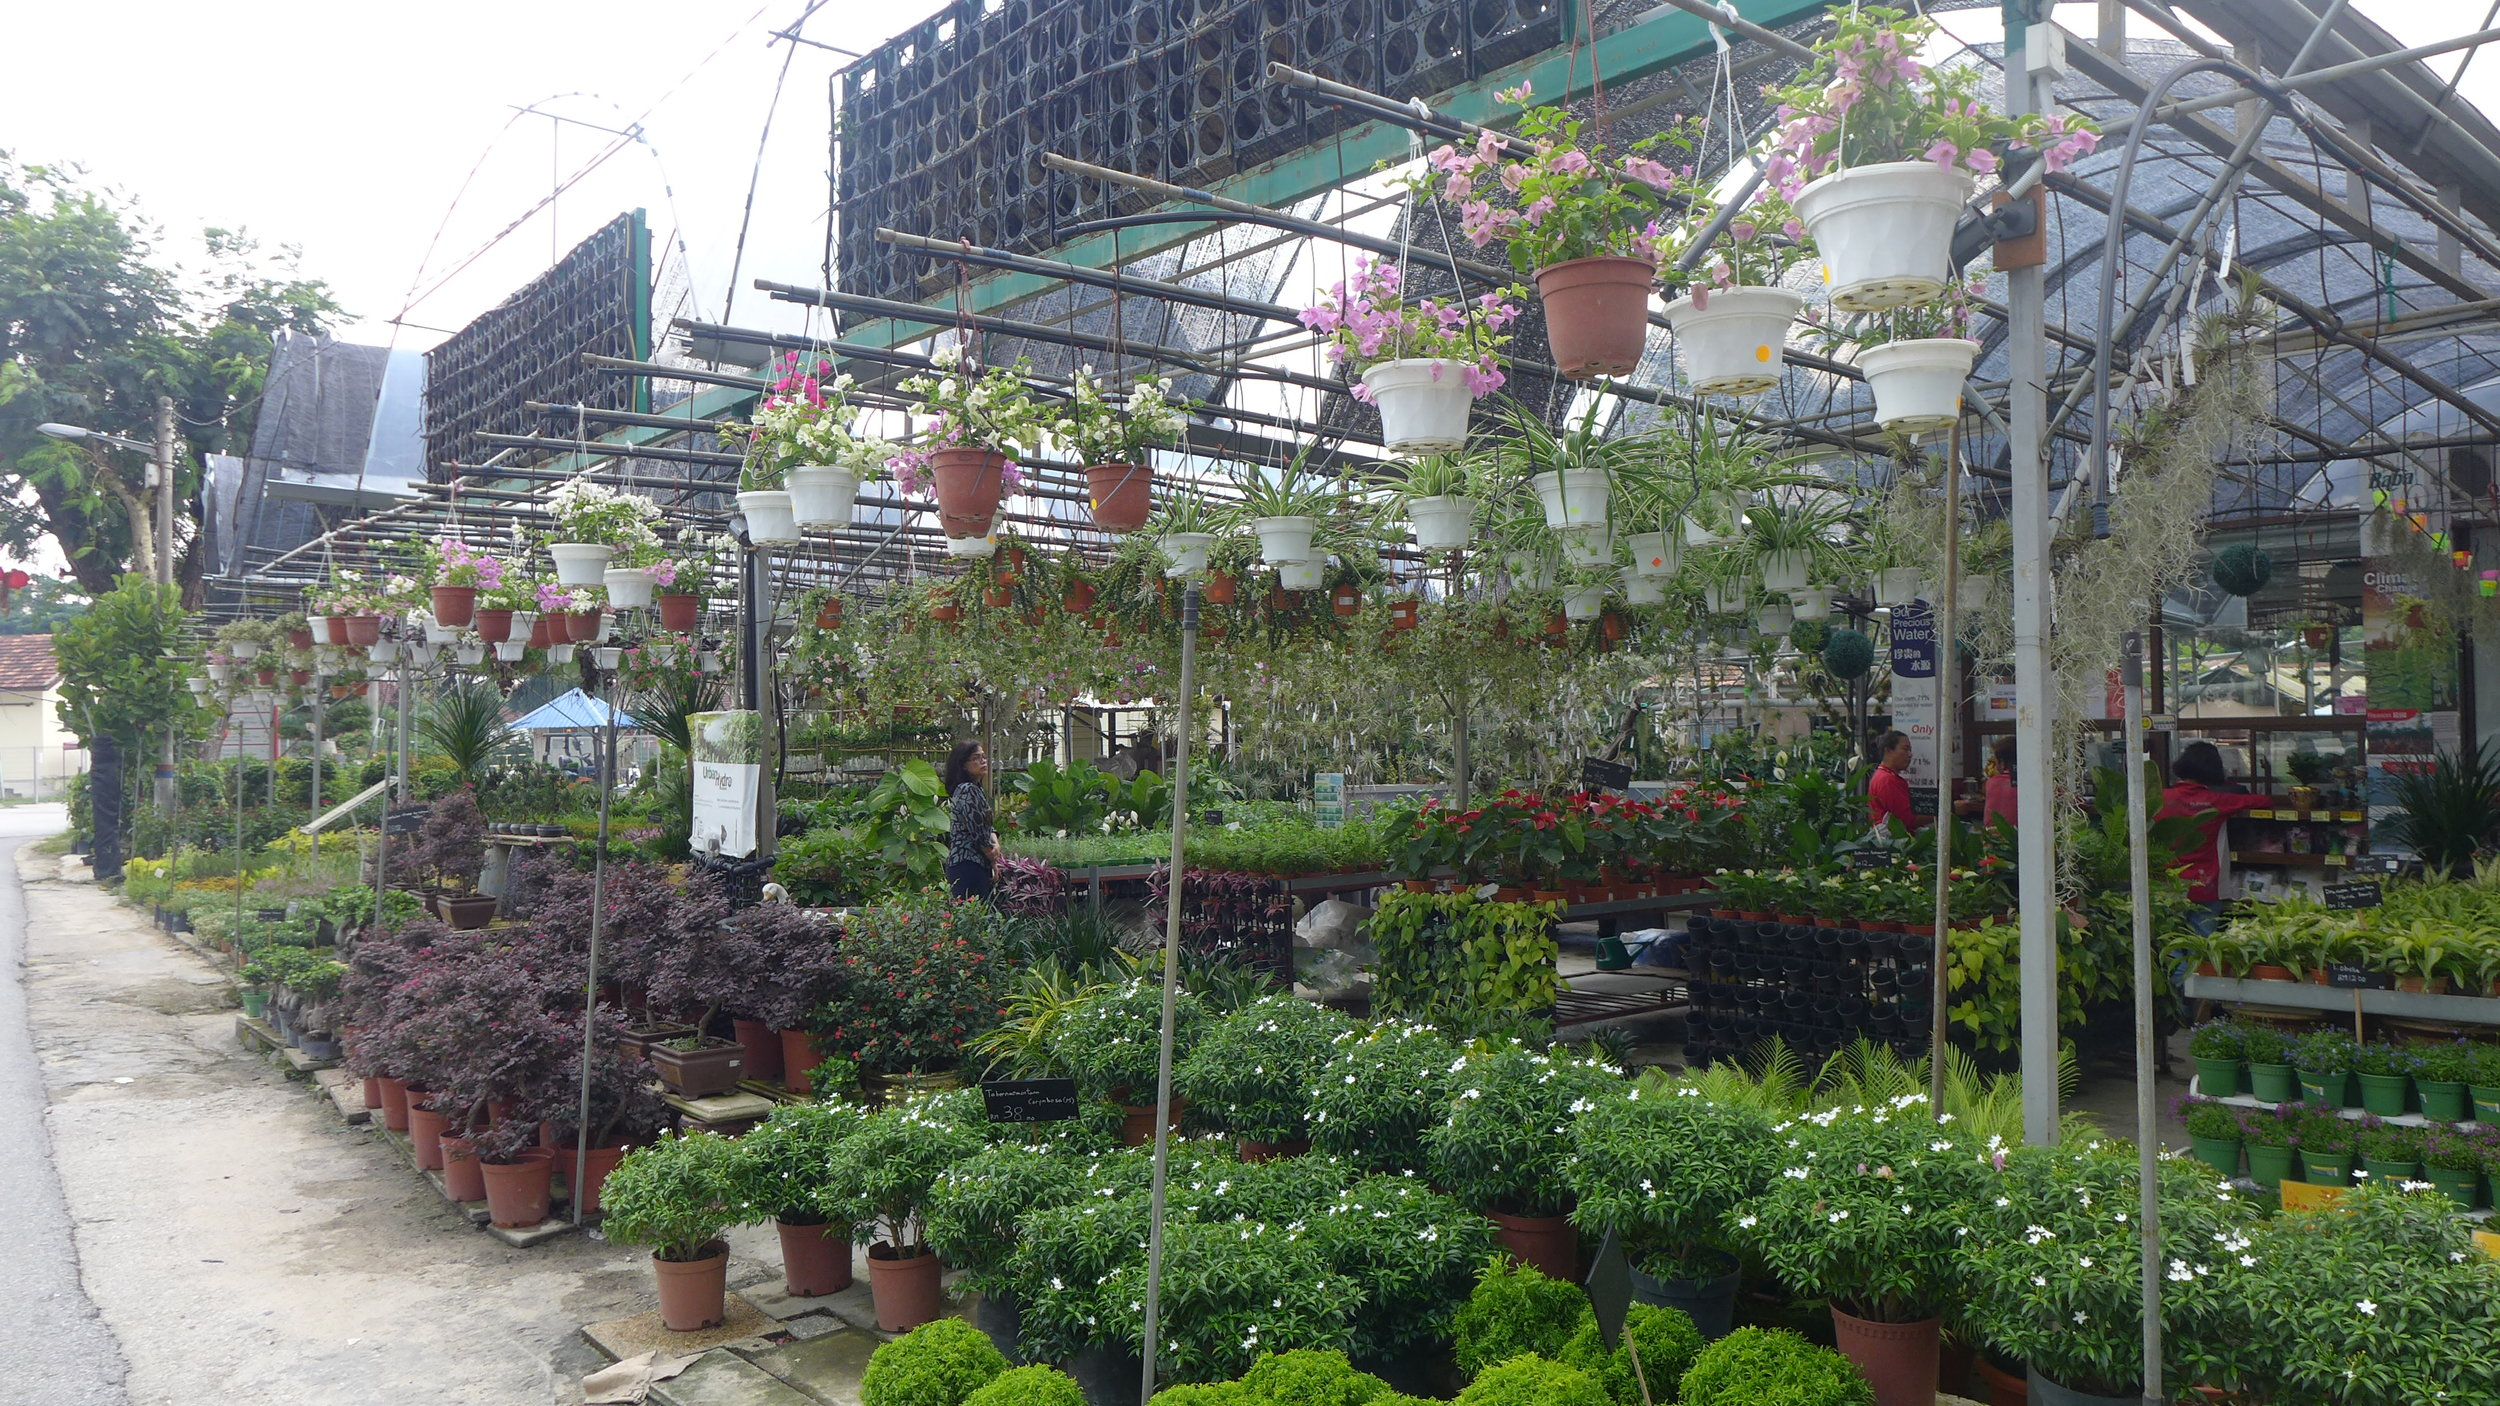 A variety of flowers and plants sold in one of the nurseries. (photo by Tan Ean Nee)